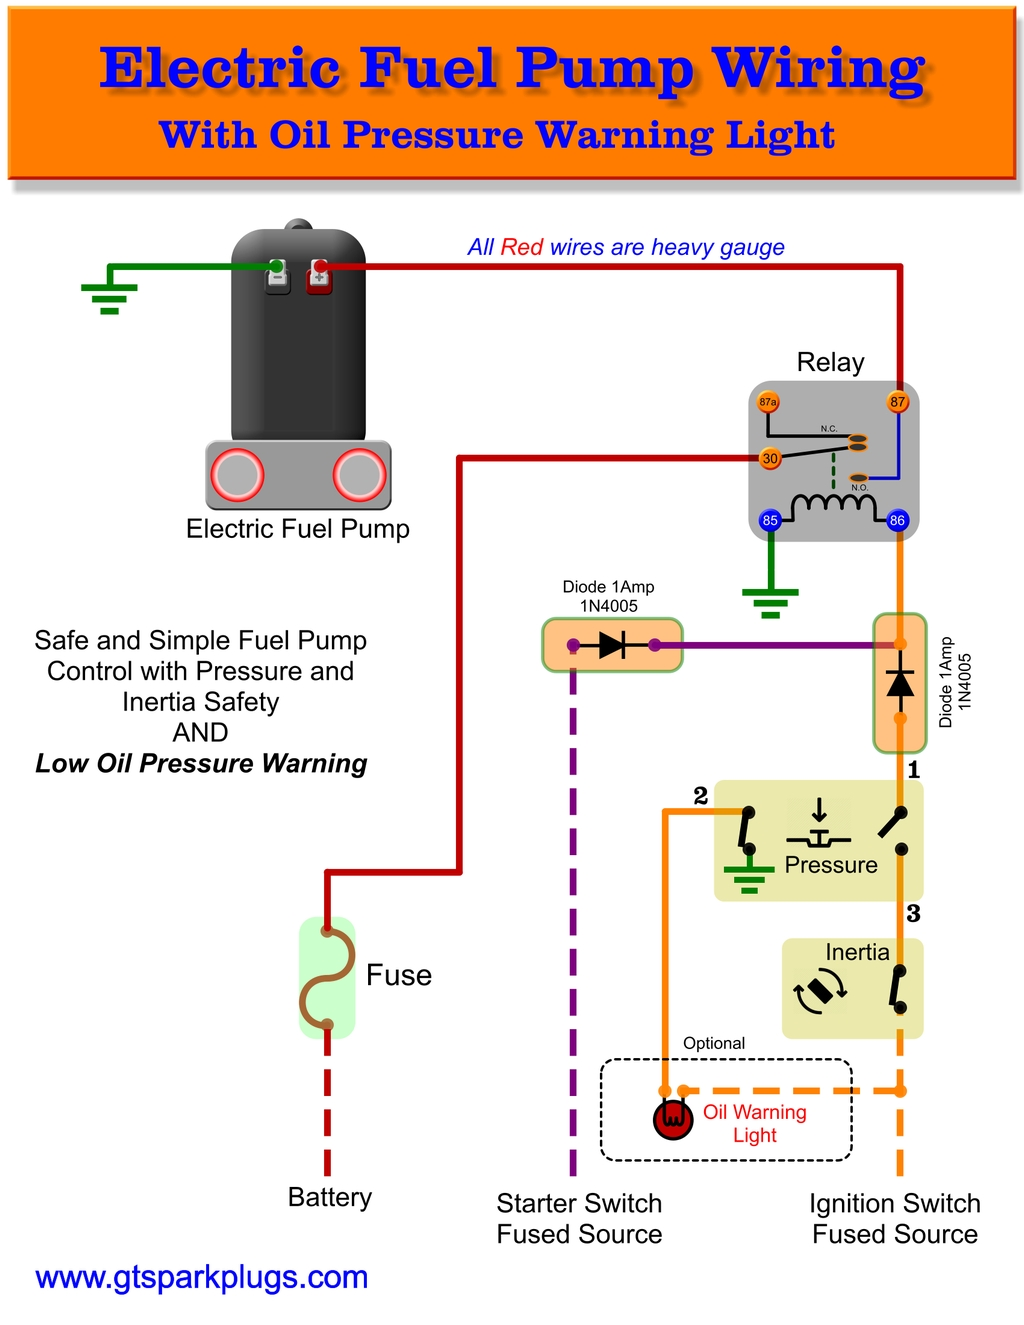 open and close switch wiring diagram open close switch wiring diagram